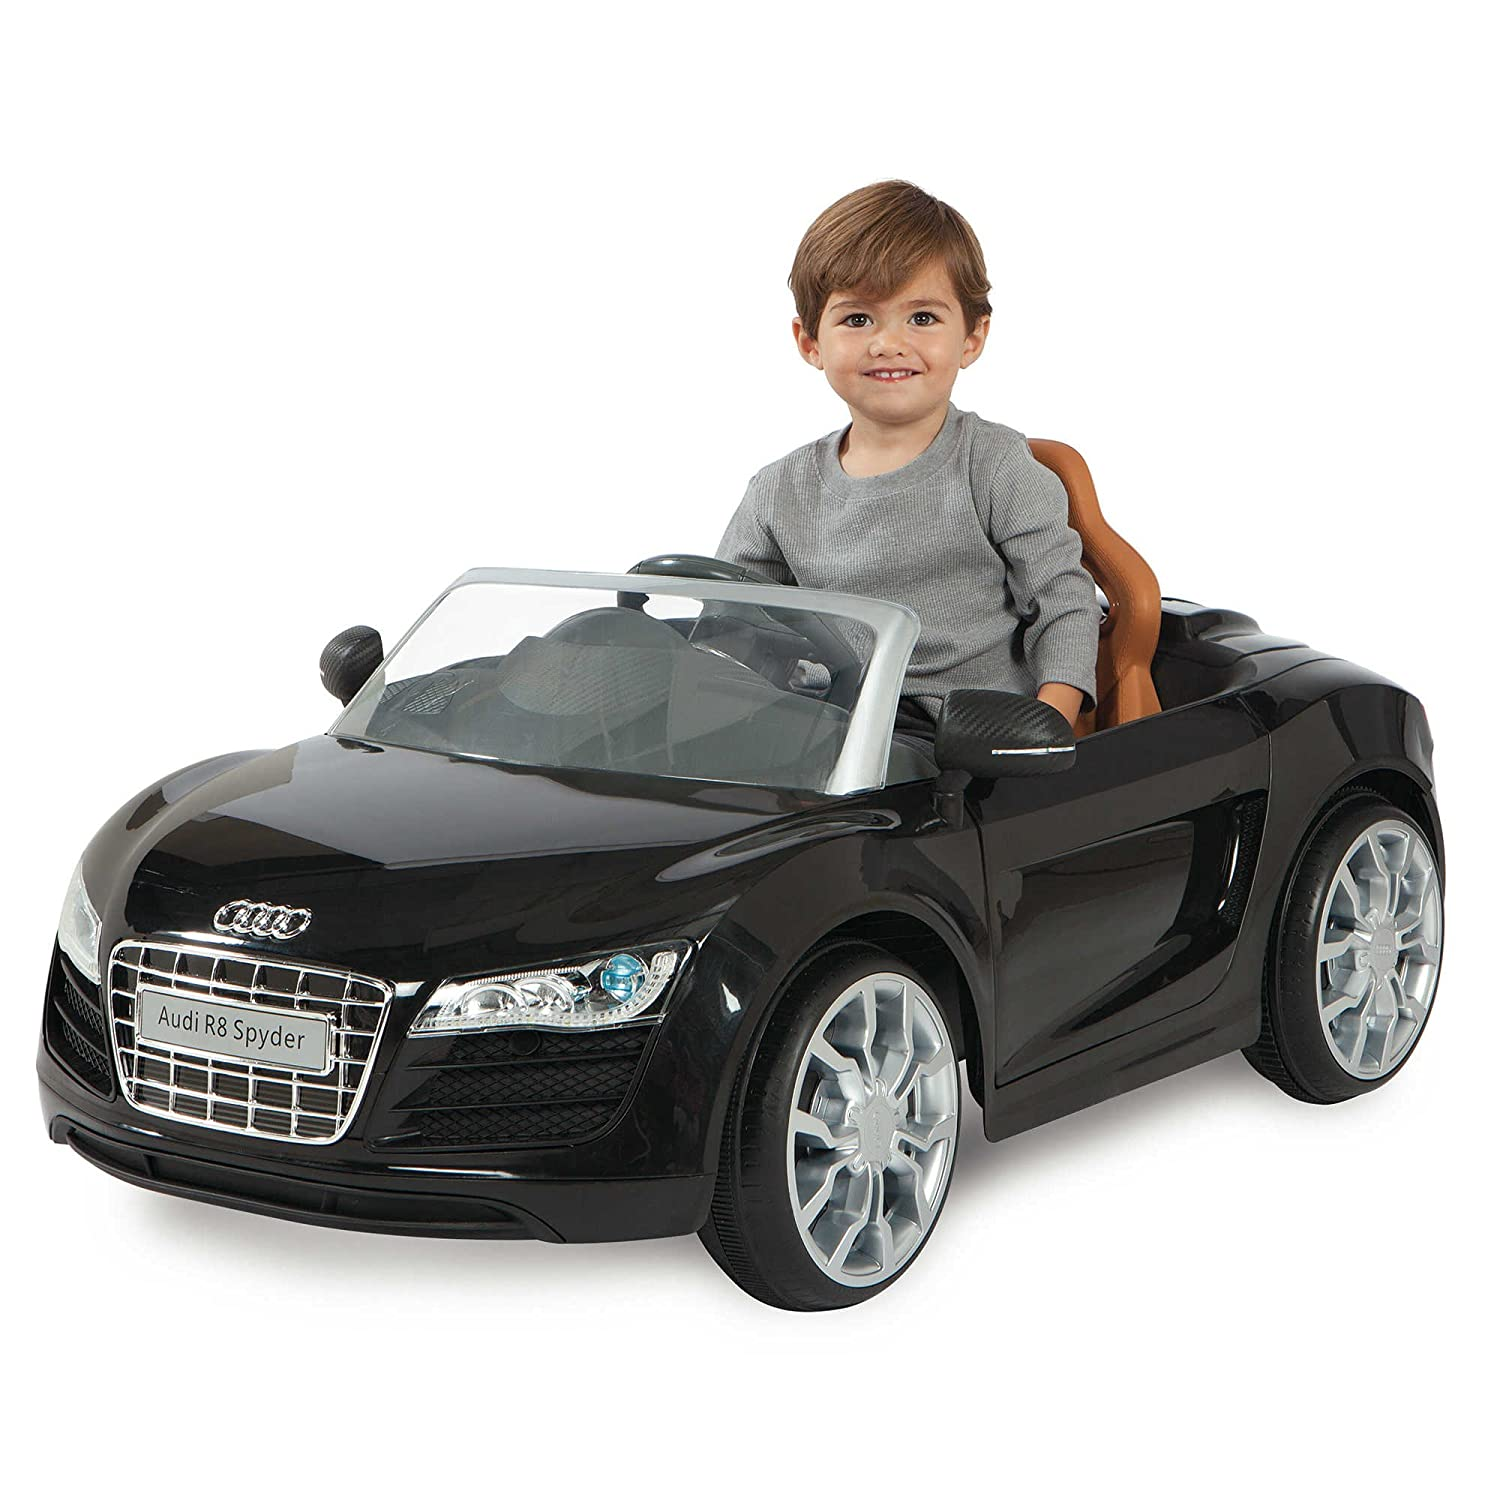 Amazon.com: Avigo Audi R8 Spyder 6 Volt Ride On: Toys & Games